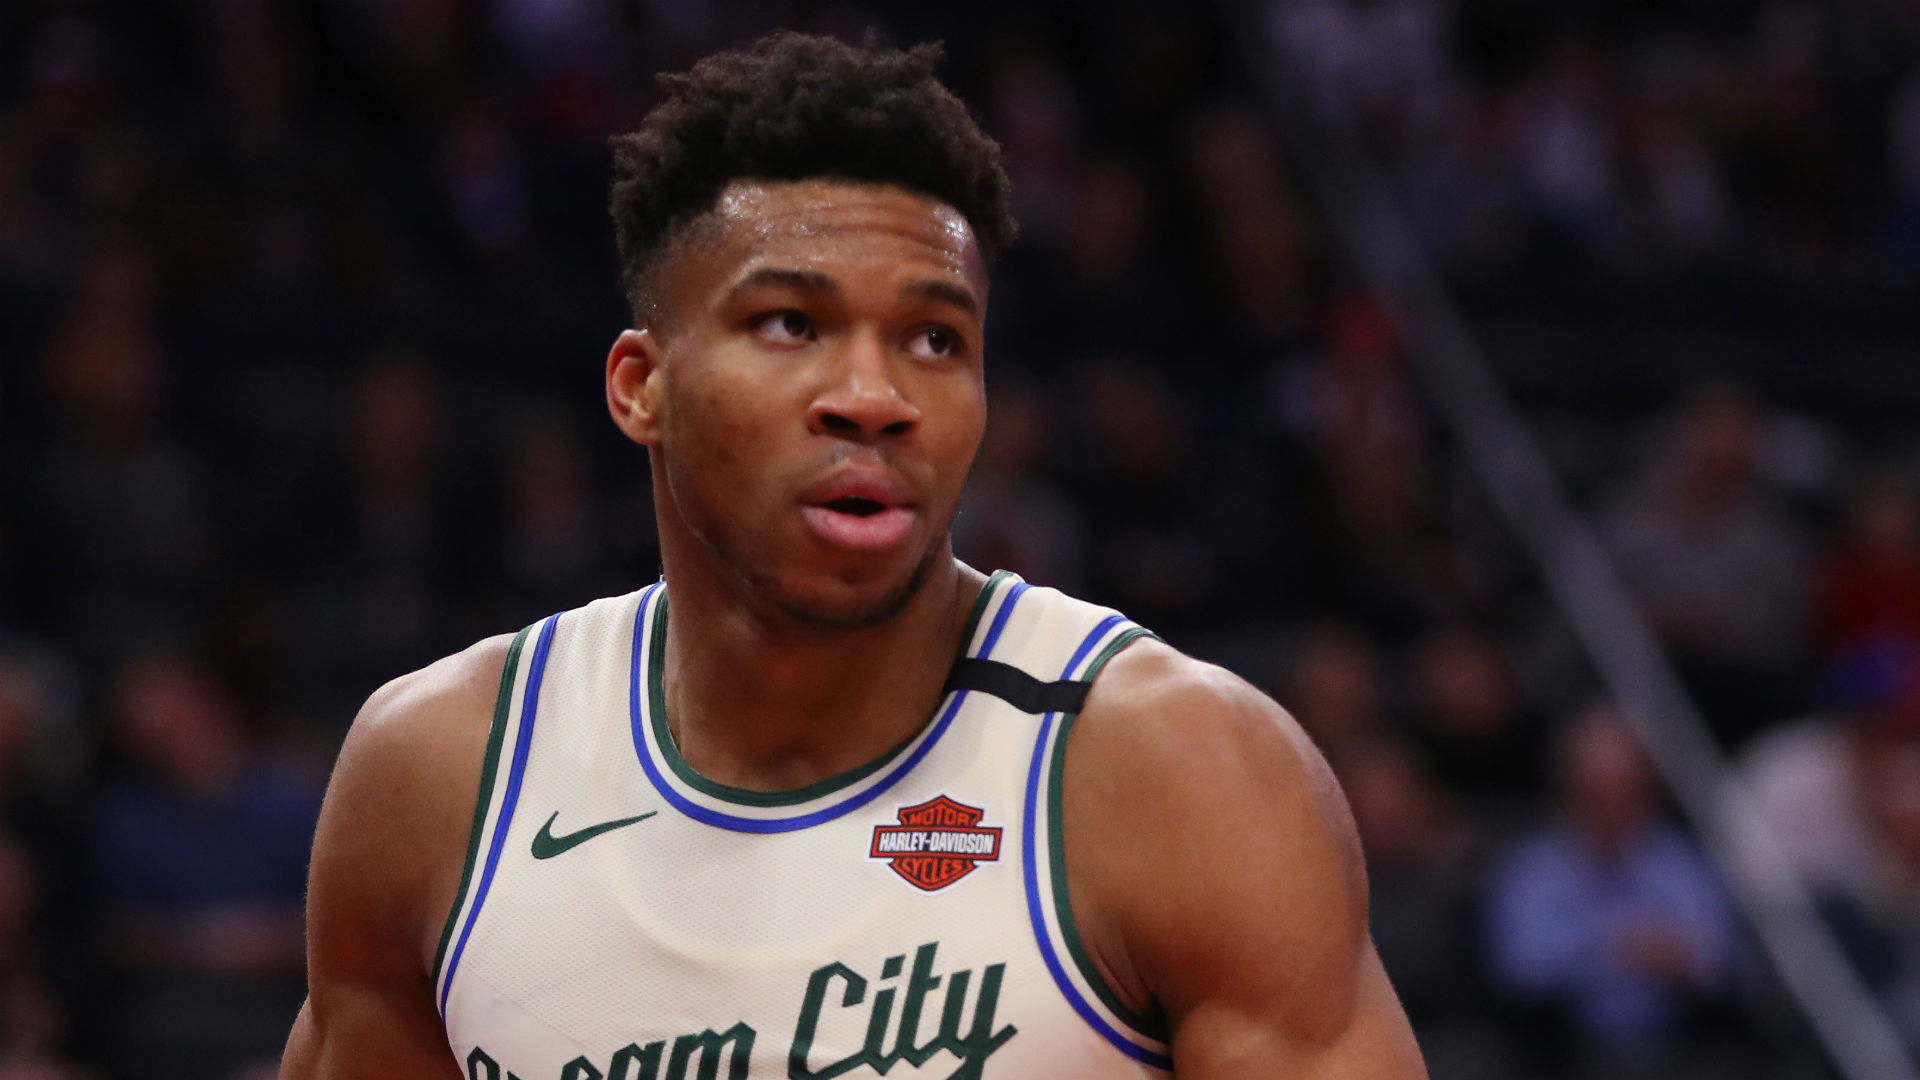 NBA playoff bracket predictions, picks, odds & series breakdowns for the 2020 bubble 2